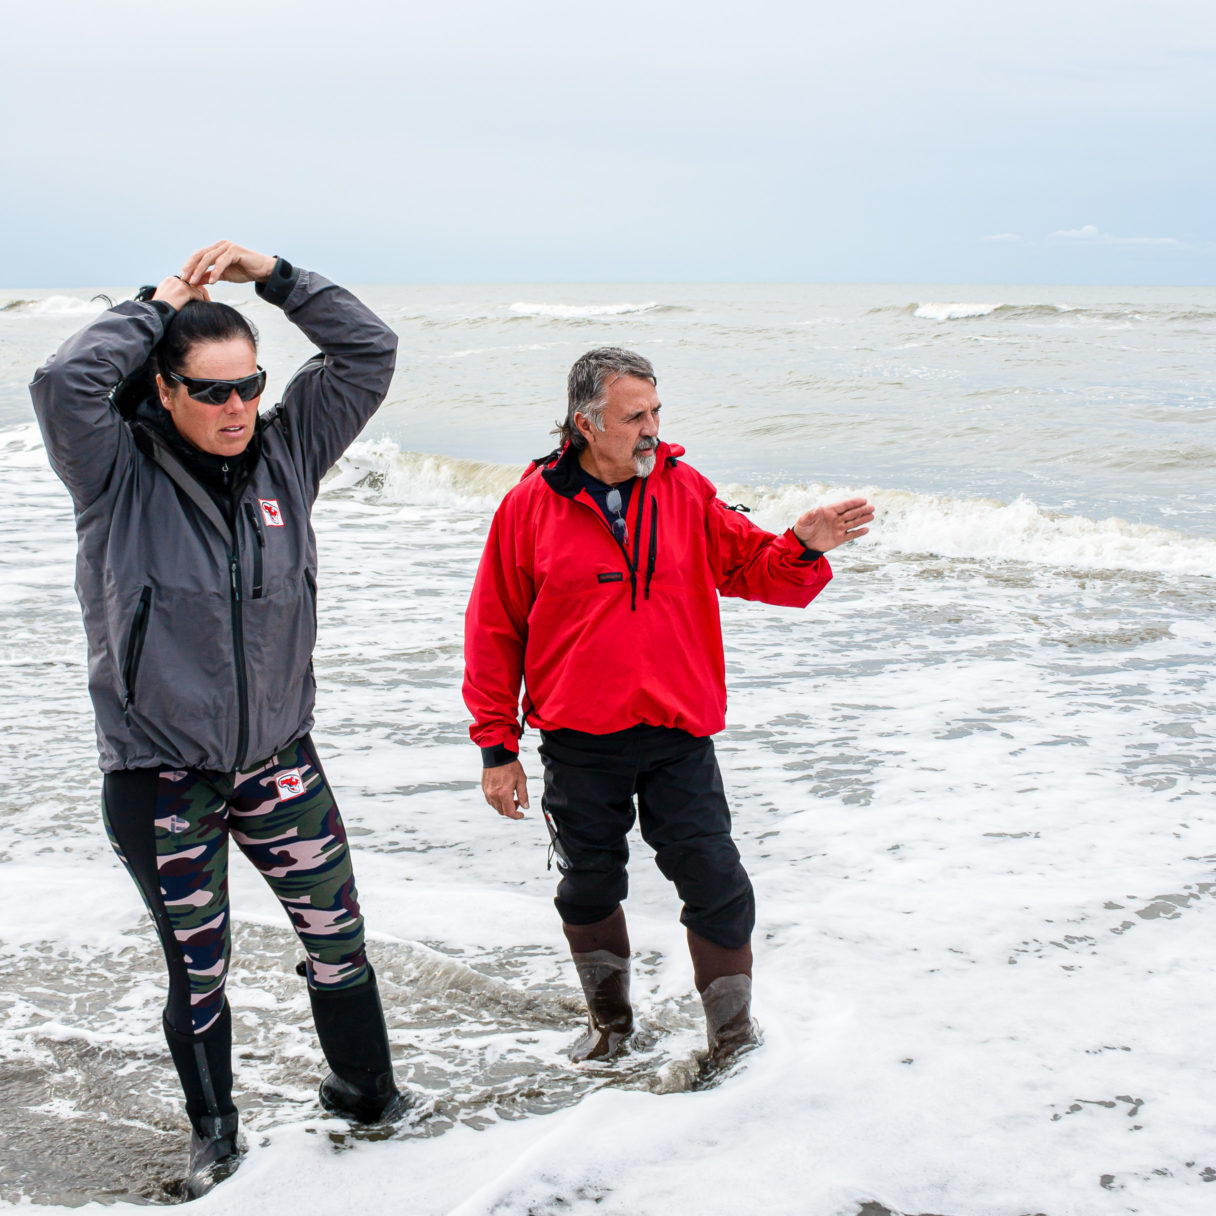 Two people look at the ocean waves of the Bering Sea, standing in knee boots in the low surf.